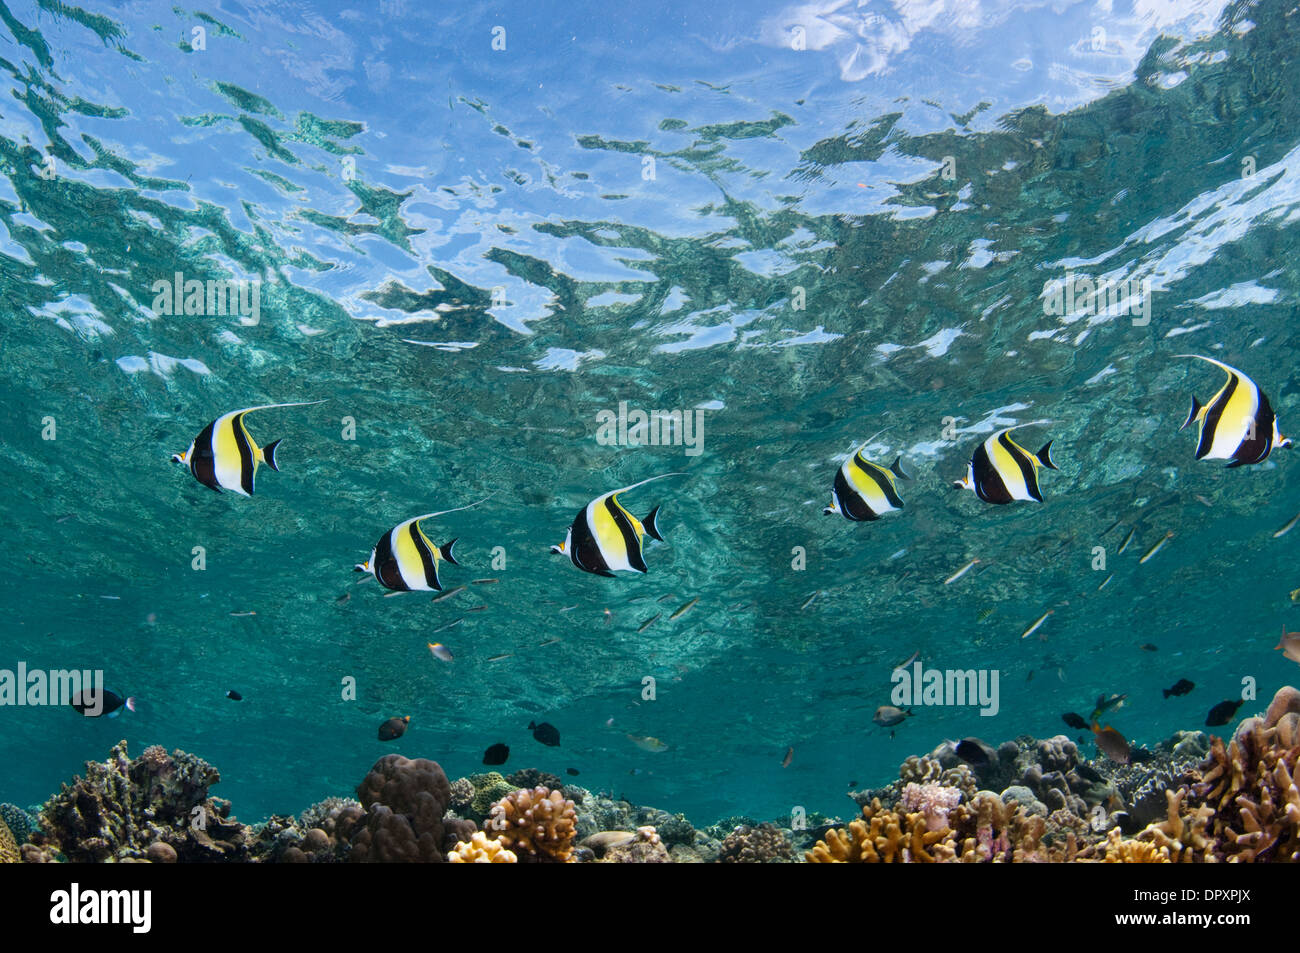 Morish Stock Photos & Morish Stock Images - Alamy